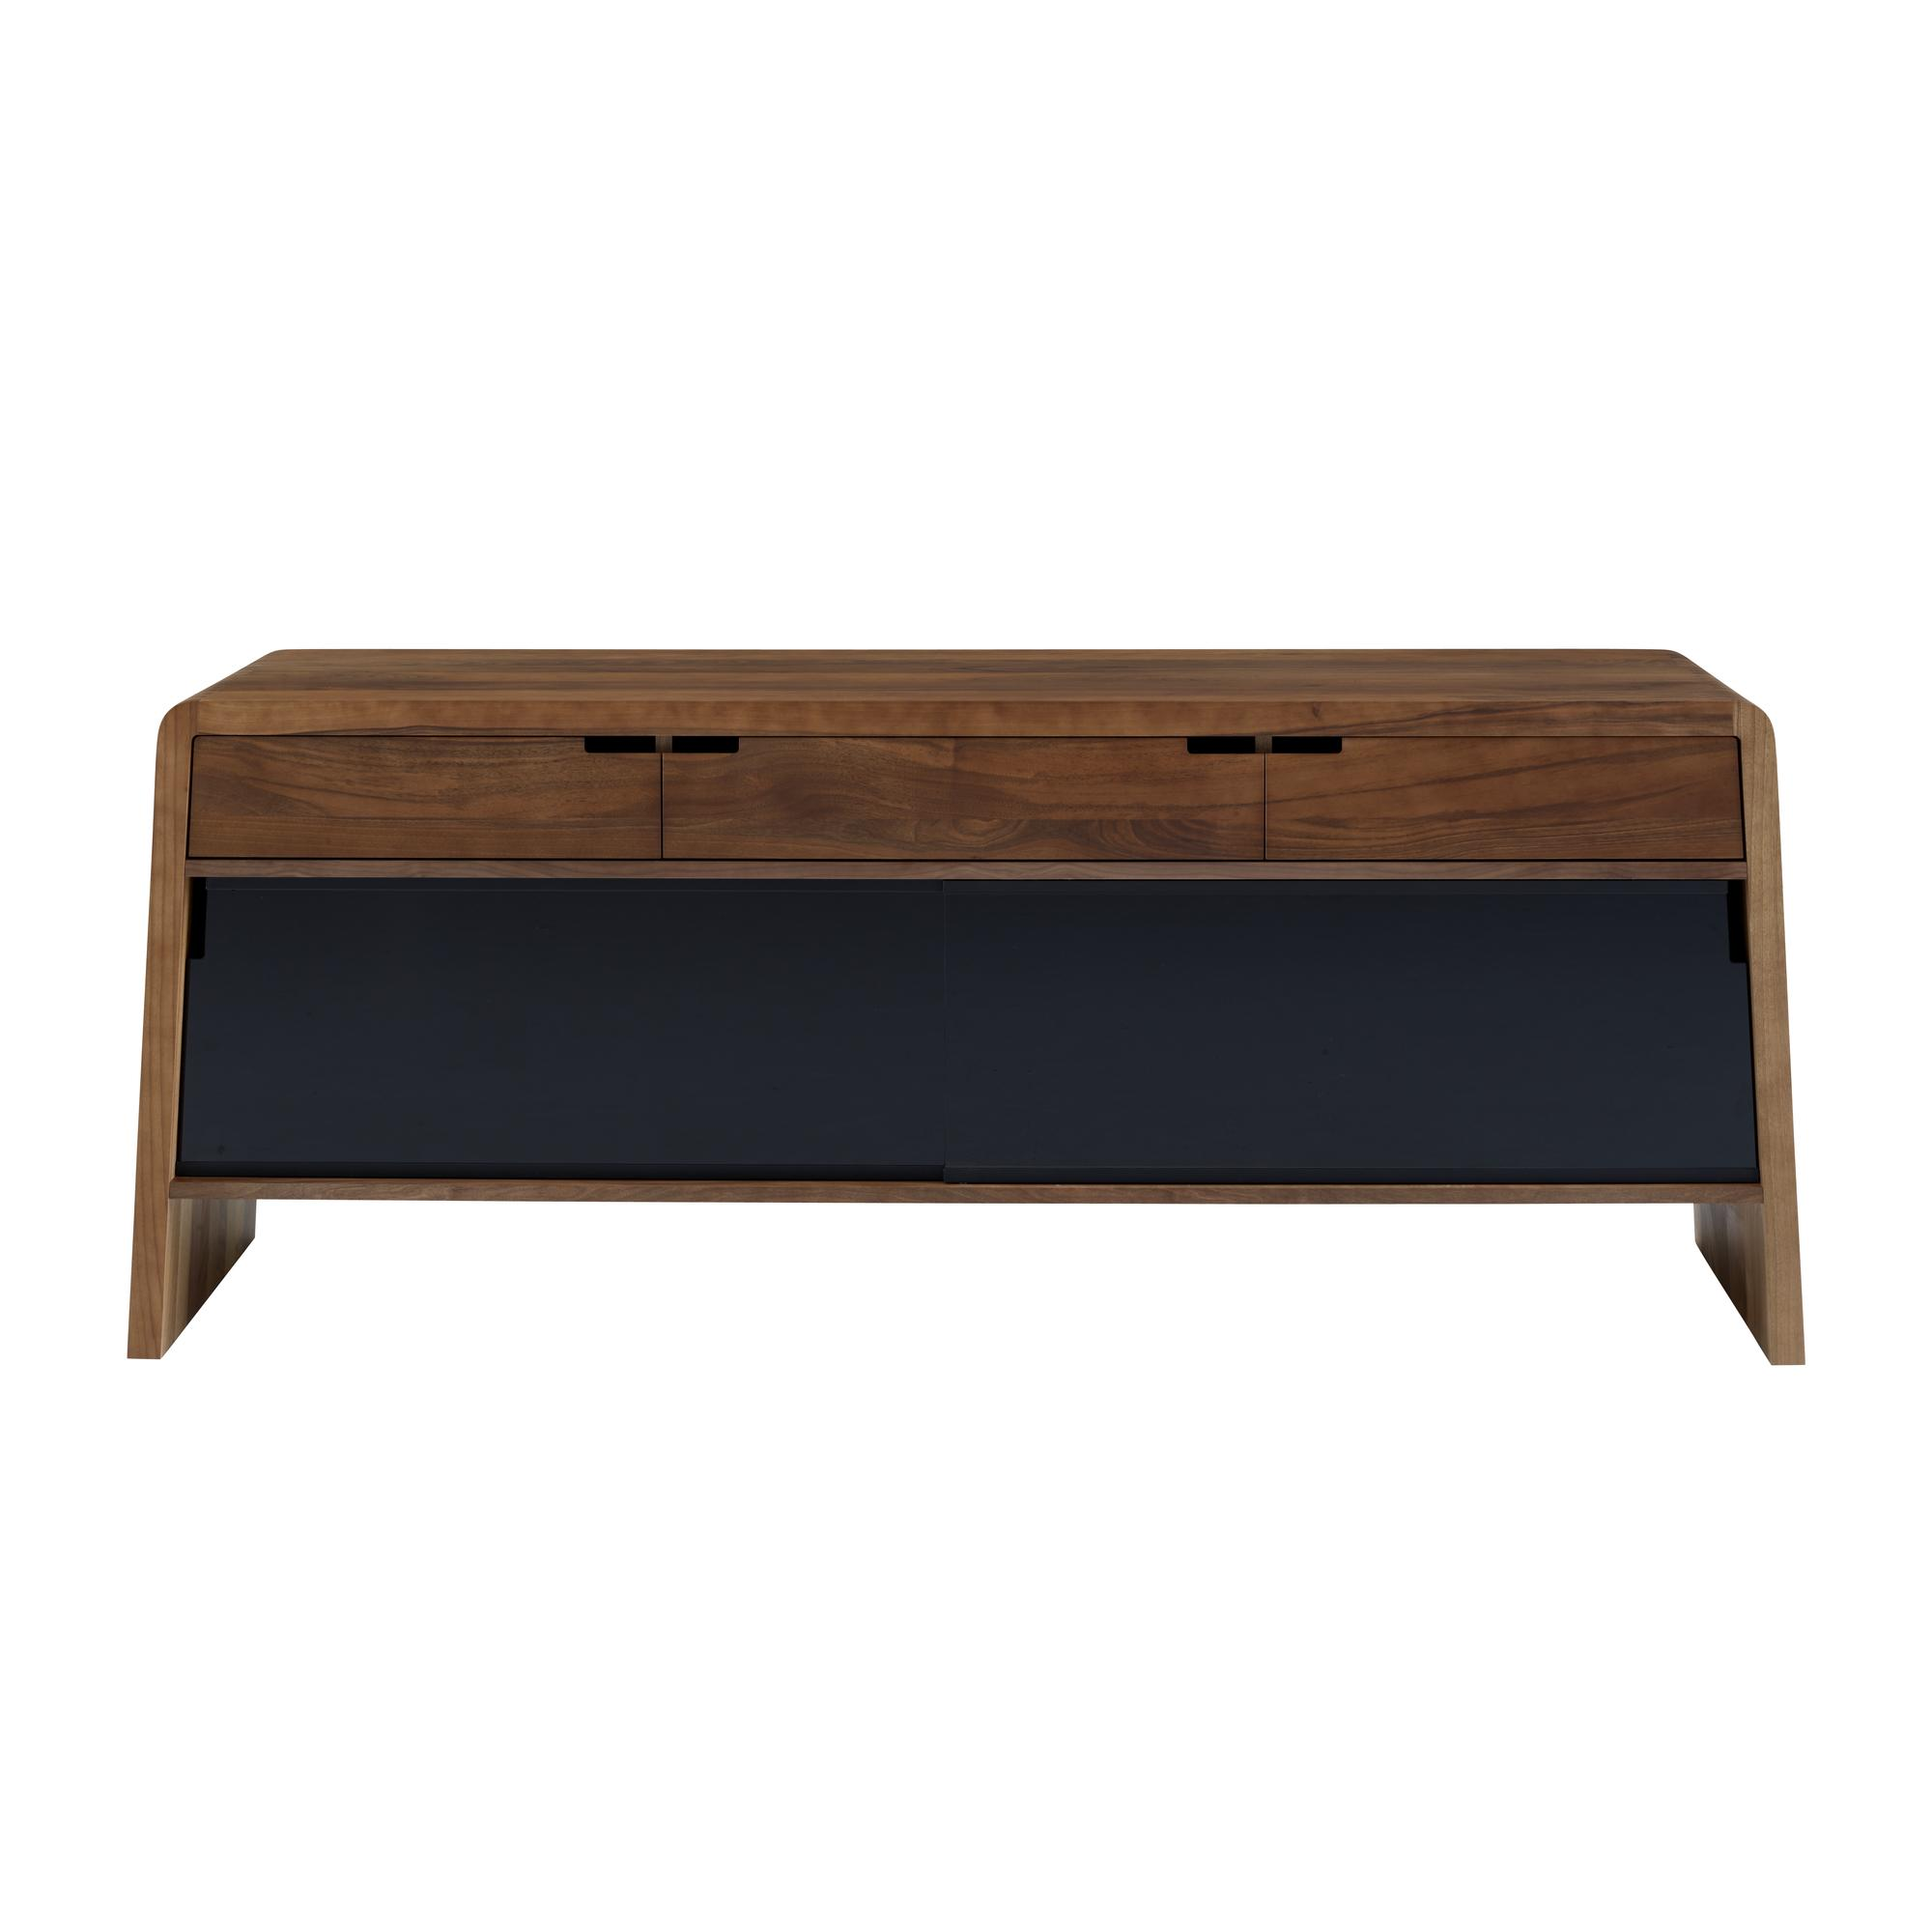 Meubles Laclau Spirit Of Forest Sideboards From Designer Peter Maly Ligne